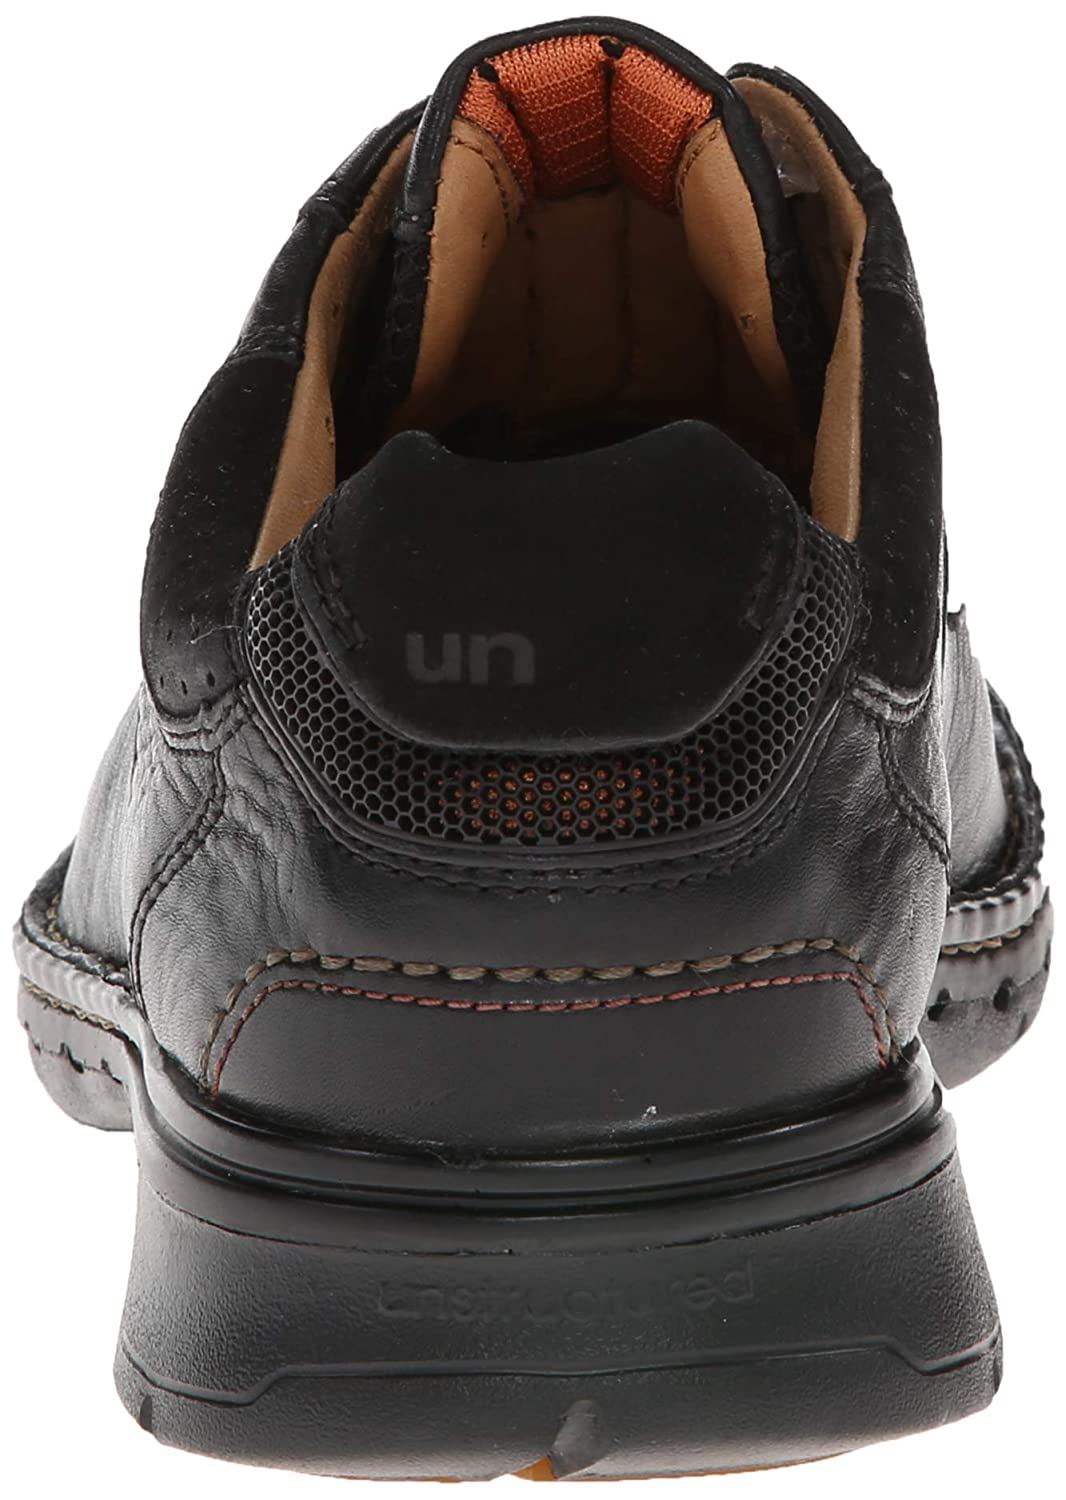 Clarks Unstructured Mens Un.Bend Casual Oxford